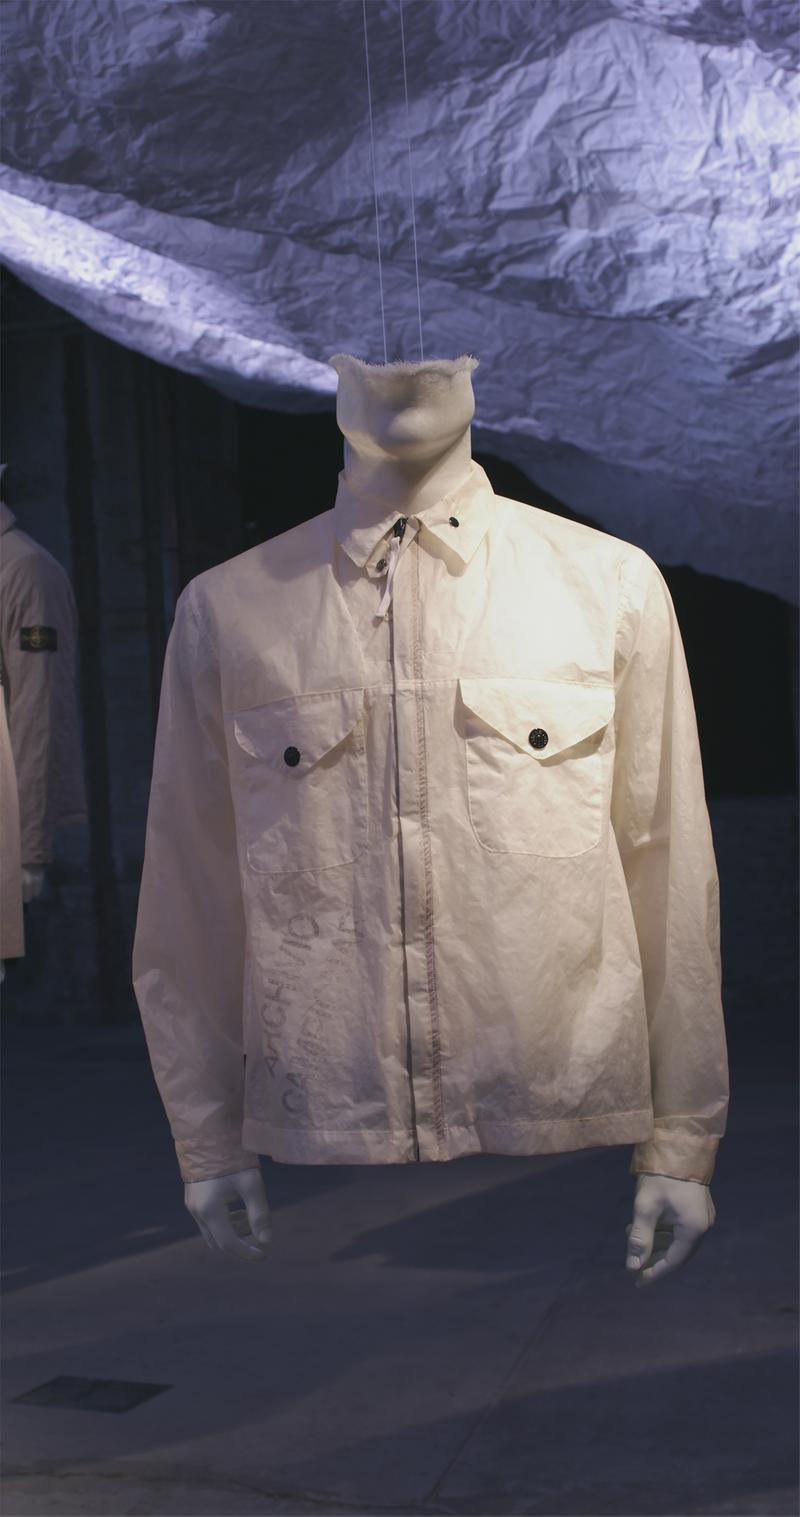 White zip up jacket with shirt collar and two button pockets on the chest displayed on mannequin bust